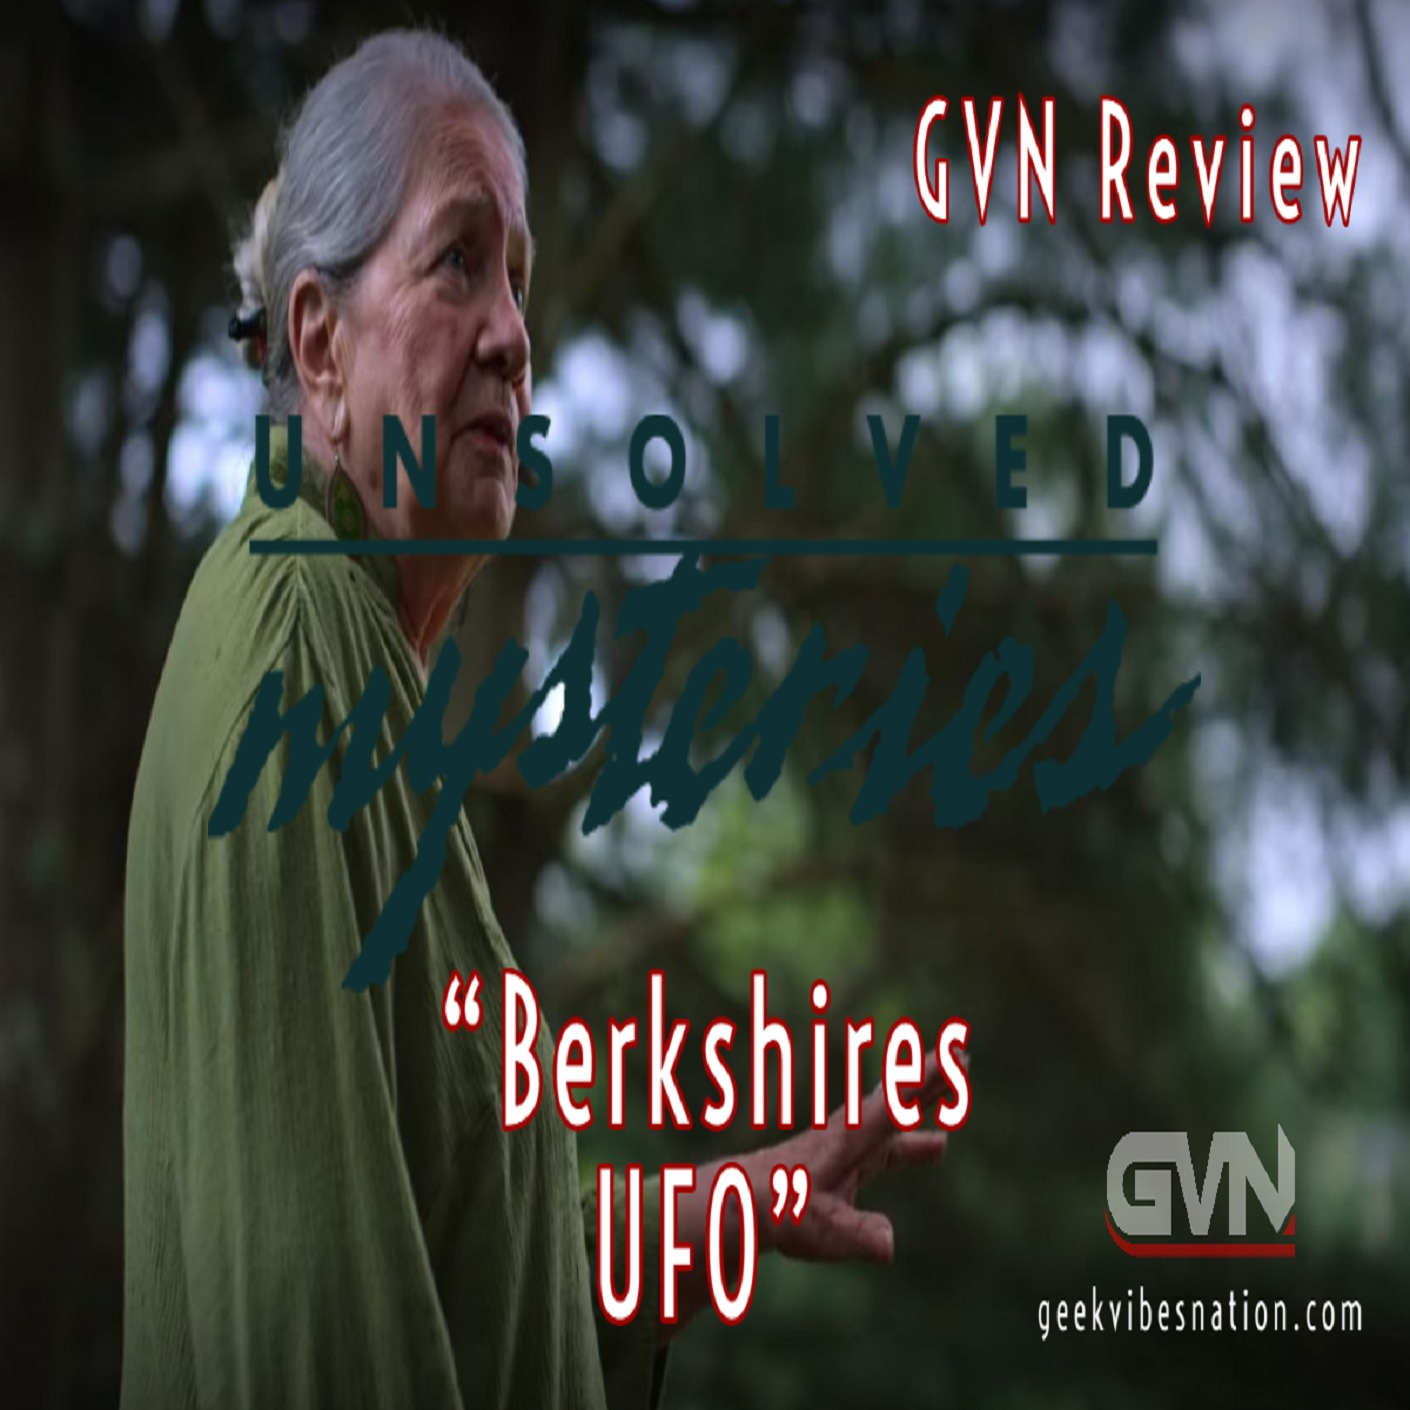 GVN Reviews: Unsolved Mysteries - Berkshires UFO